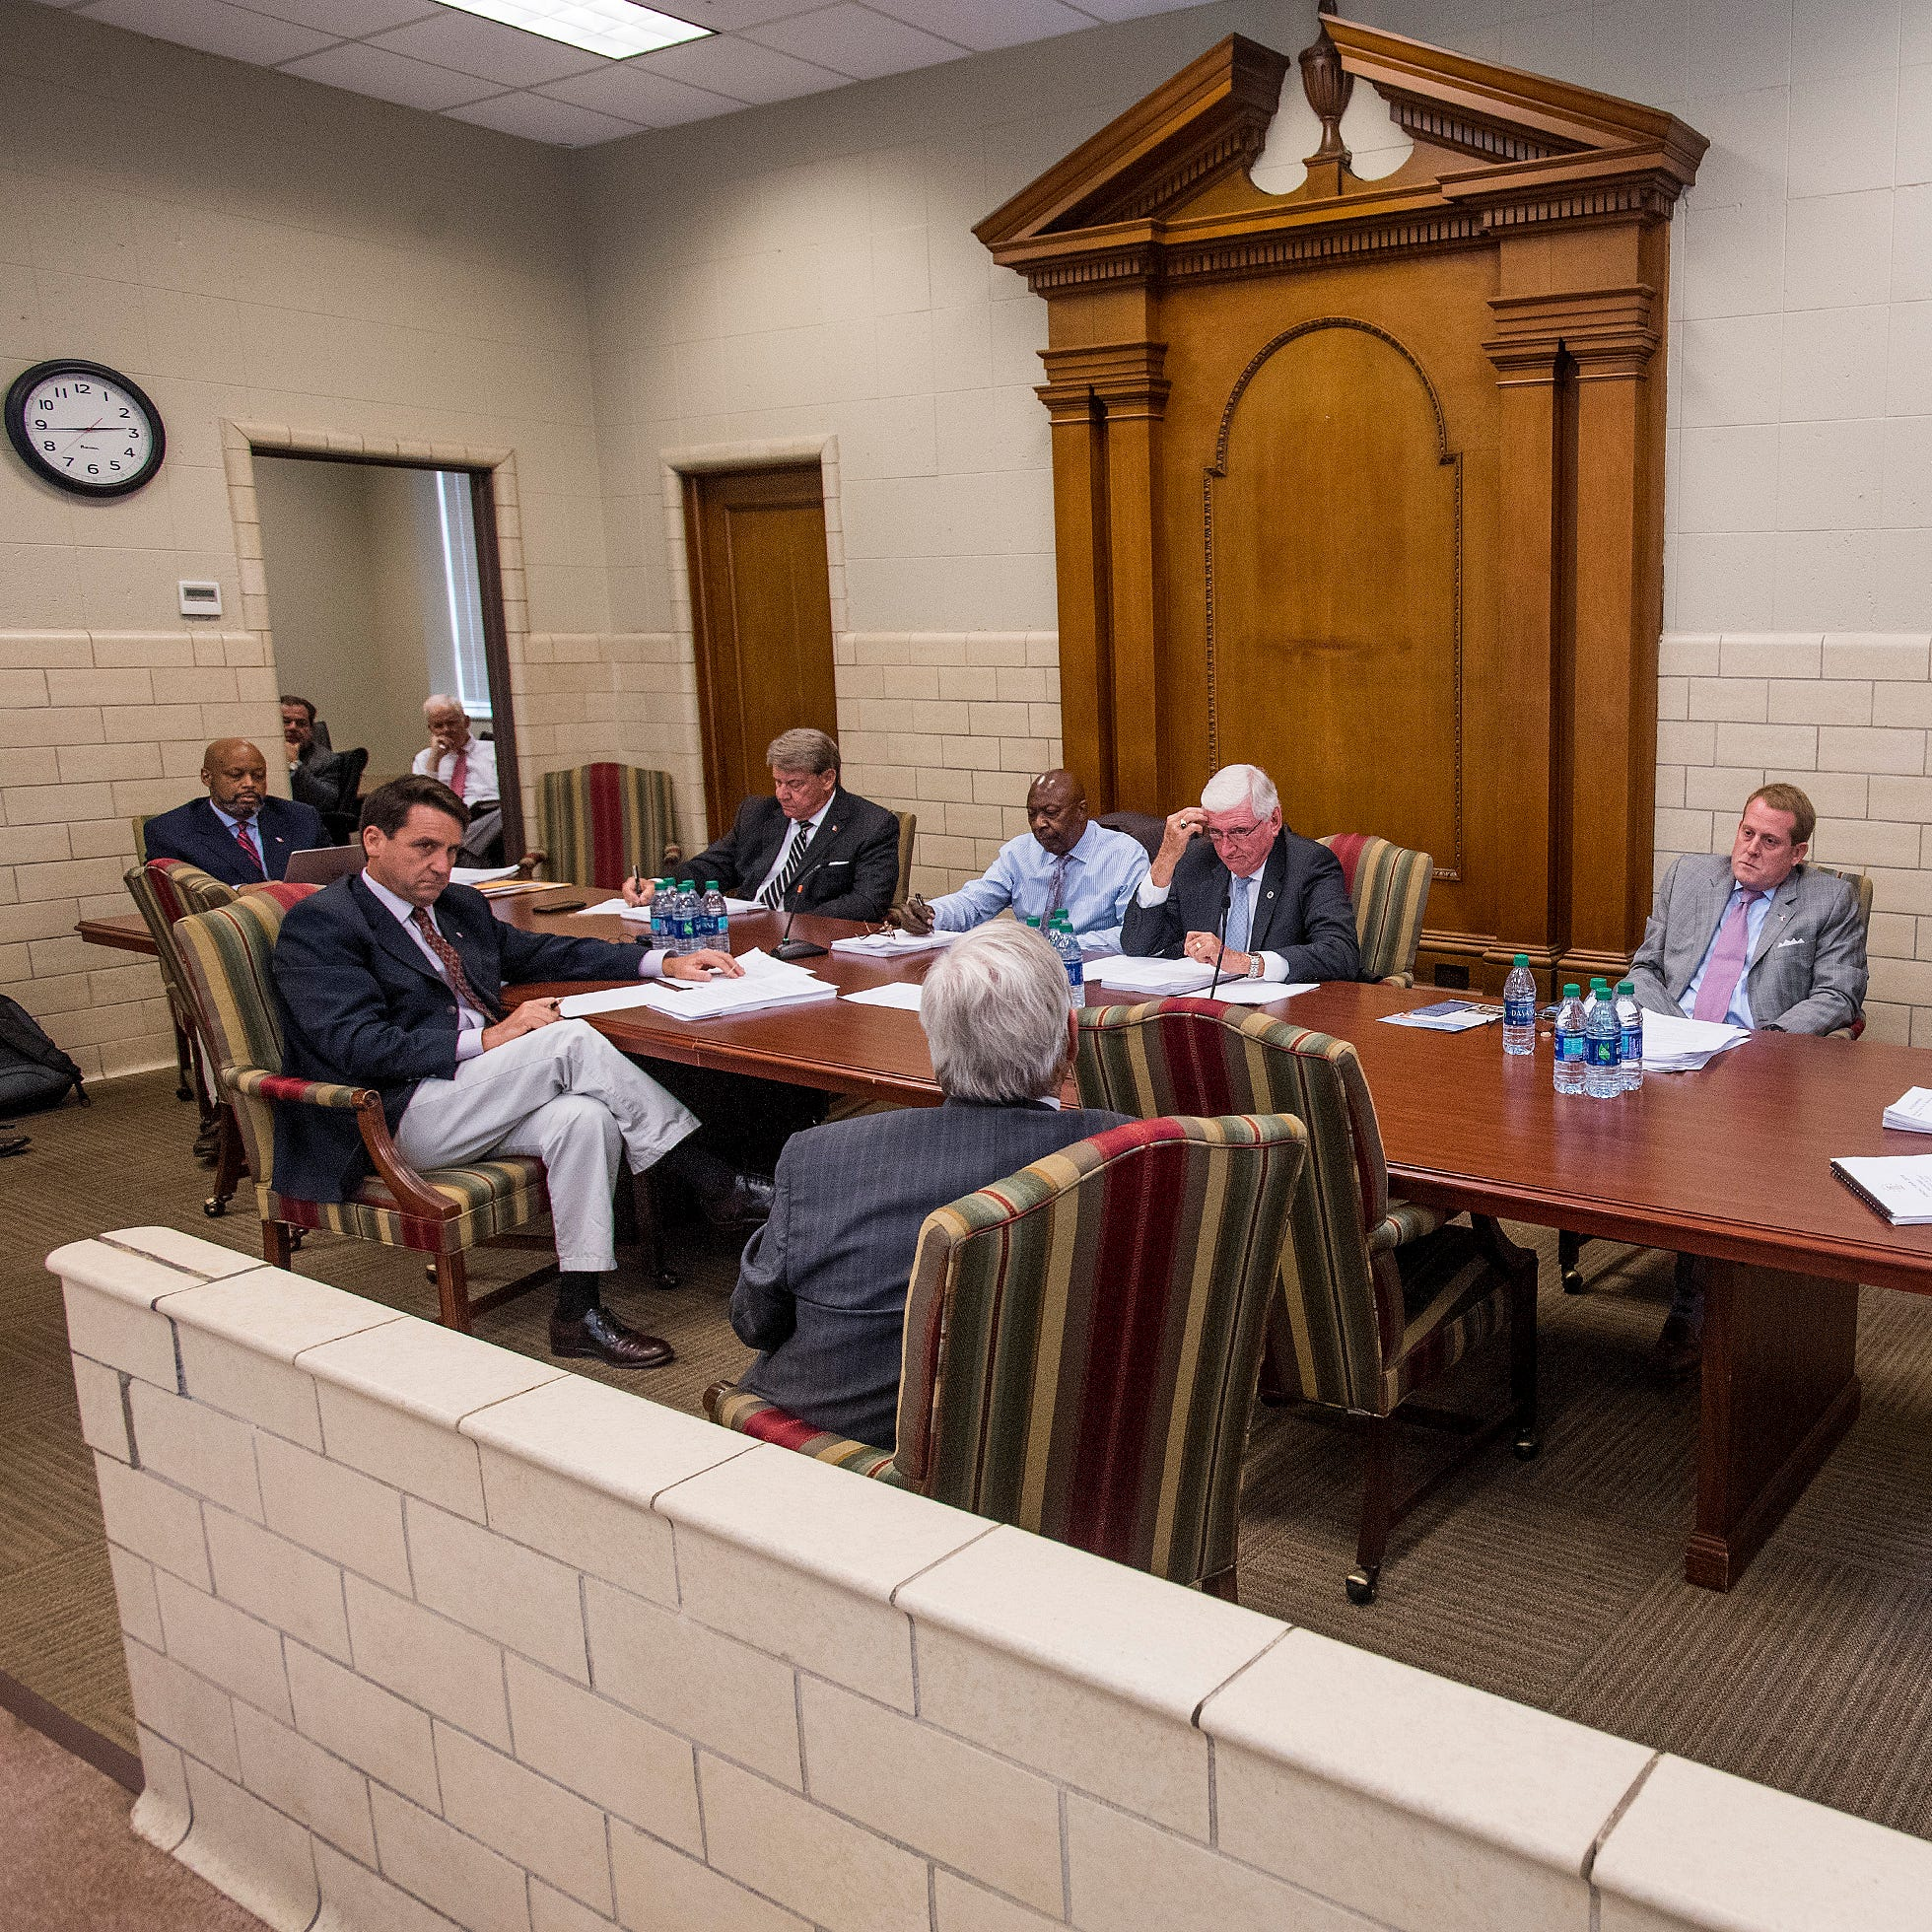 The Montgomery City Council work session at city hall in Montgomery, Ala. on Monday August 21, 2018.